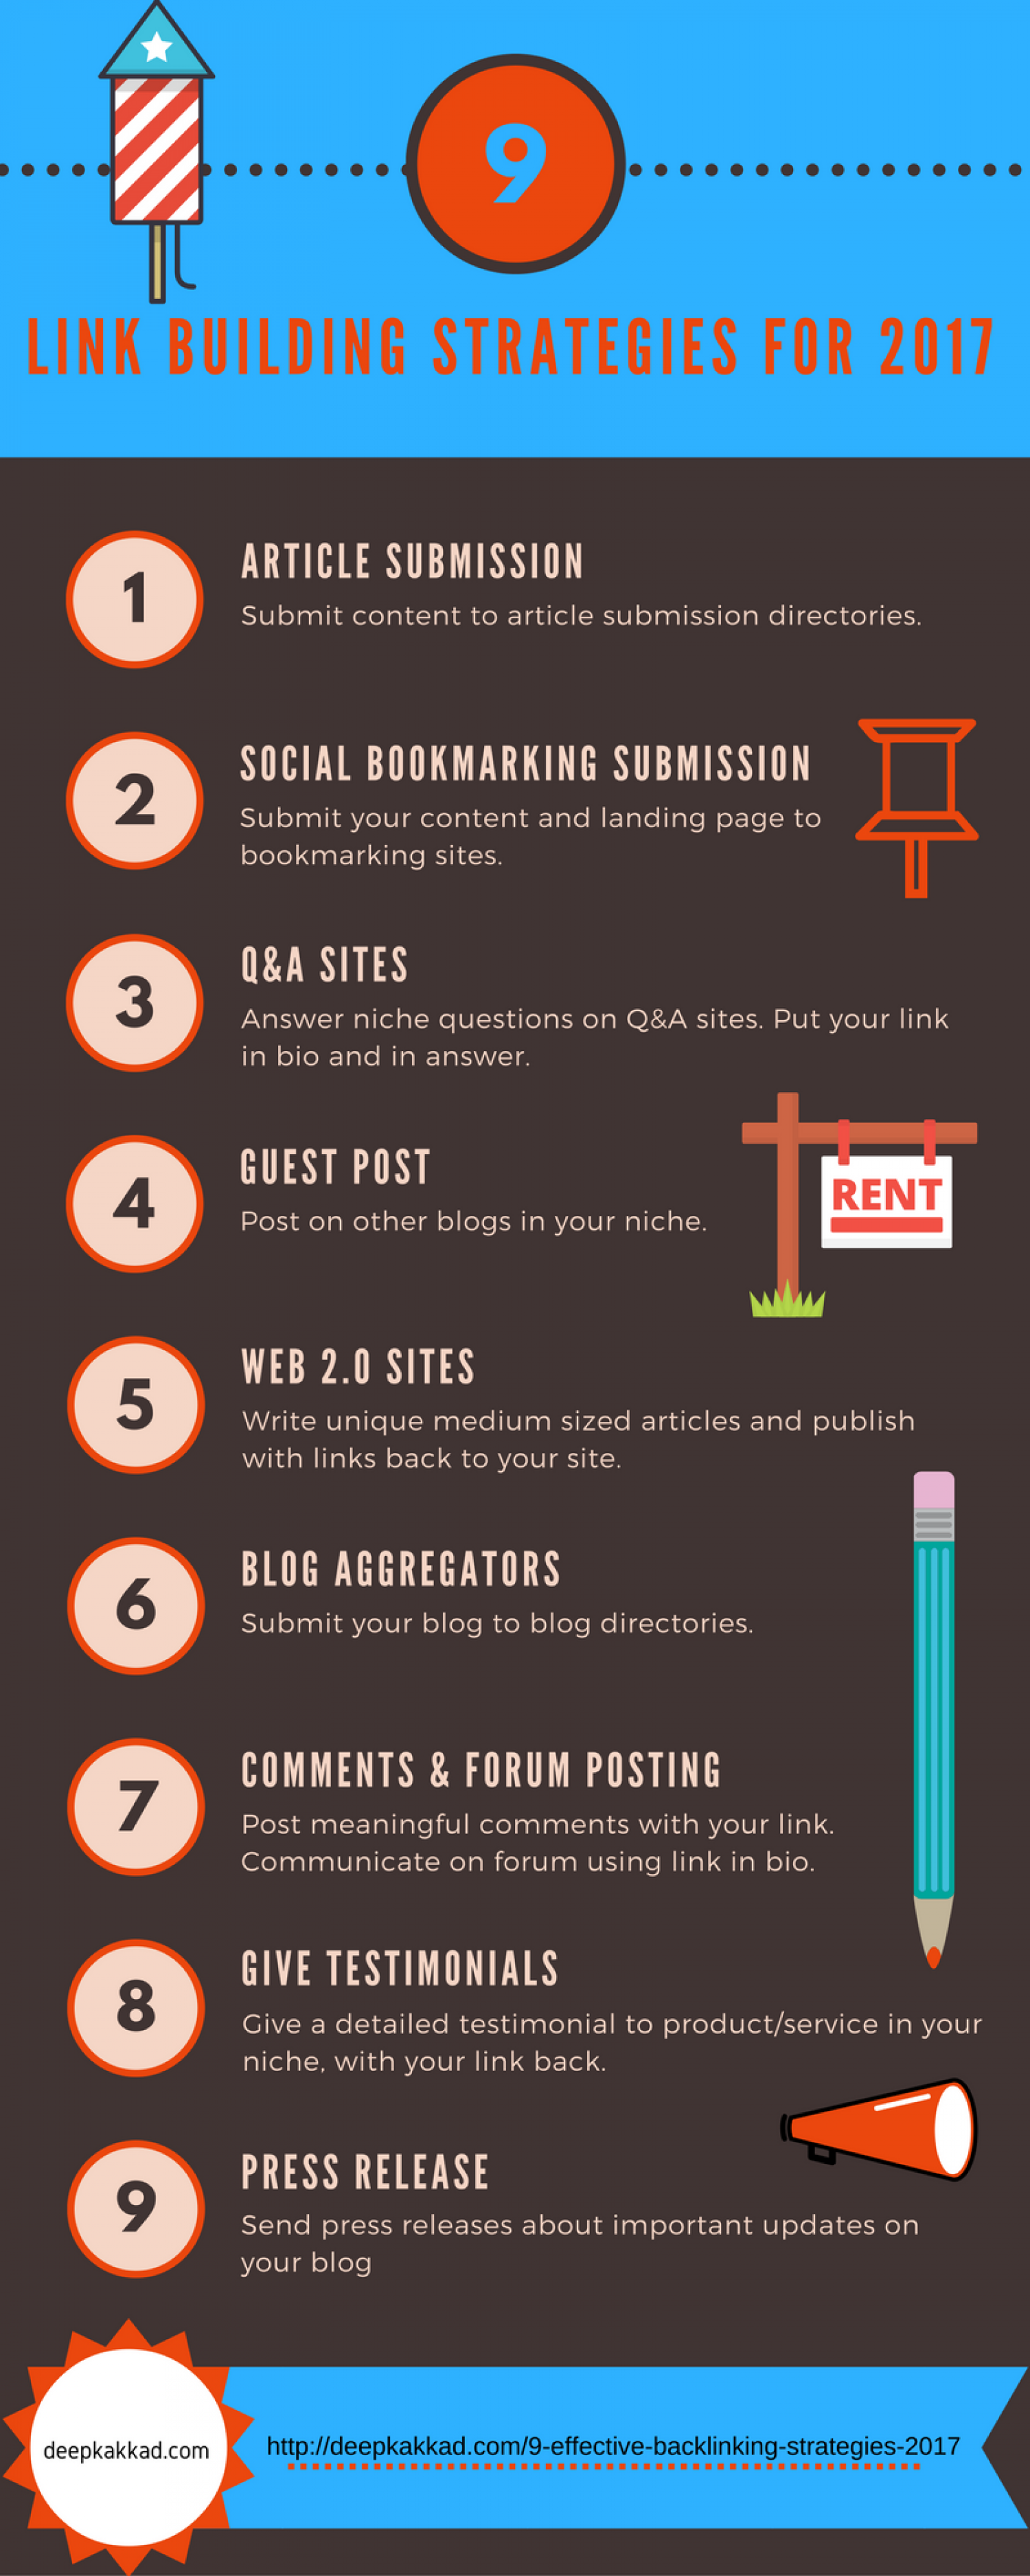 9 Link Building Strategies For 2017 Infographic